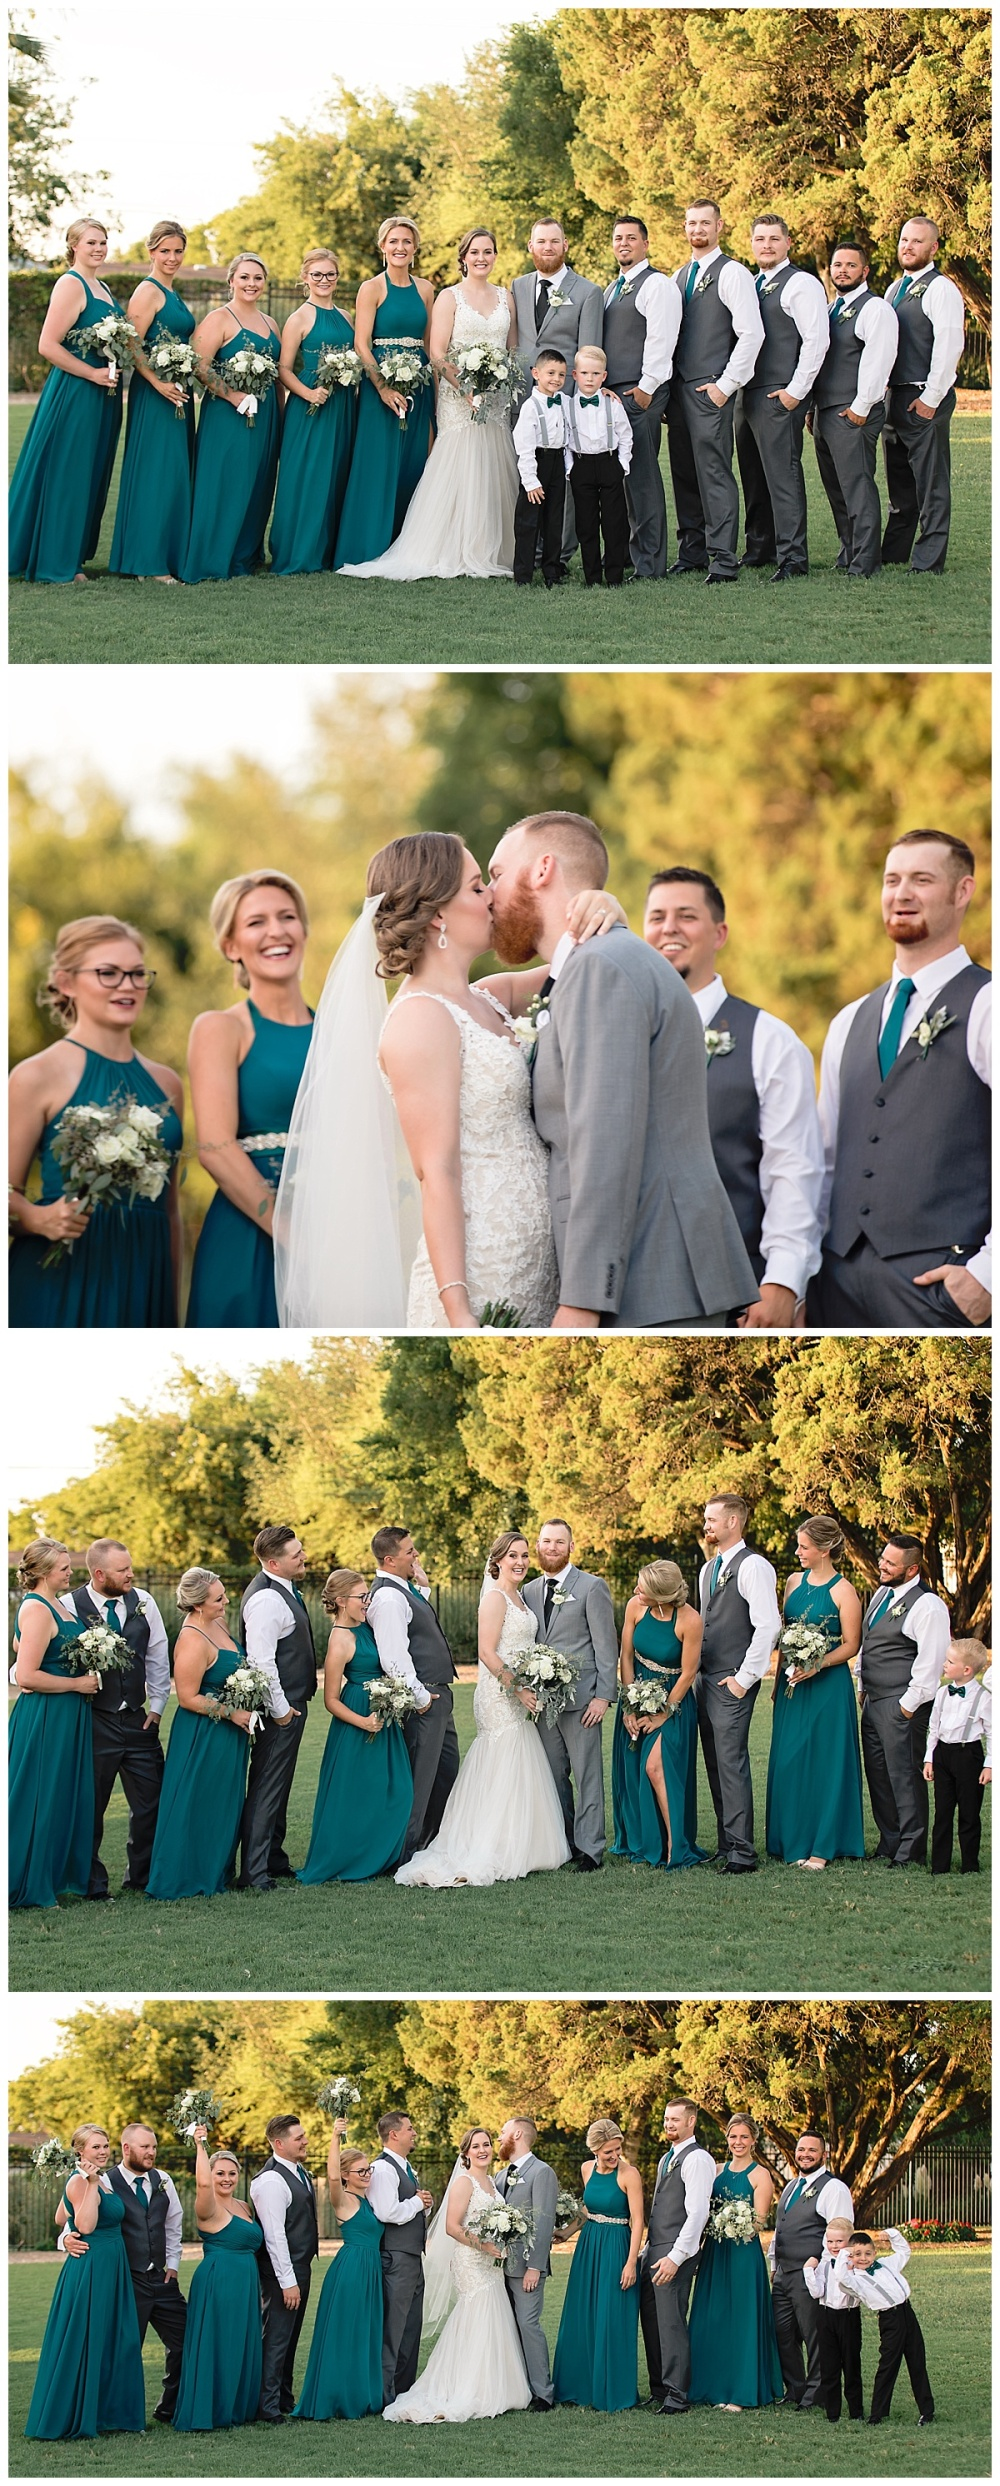 Carly-Barton-Photography-Wedding-Photos-Granberry-Hills-Event-Facility-Ryan-Chelsea-San-Antonio-Texas_0042